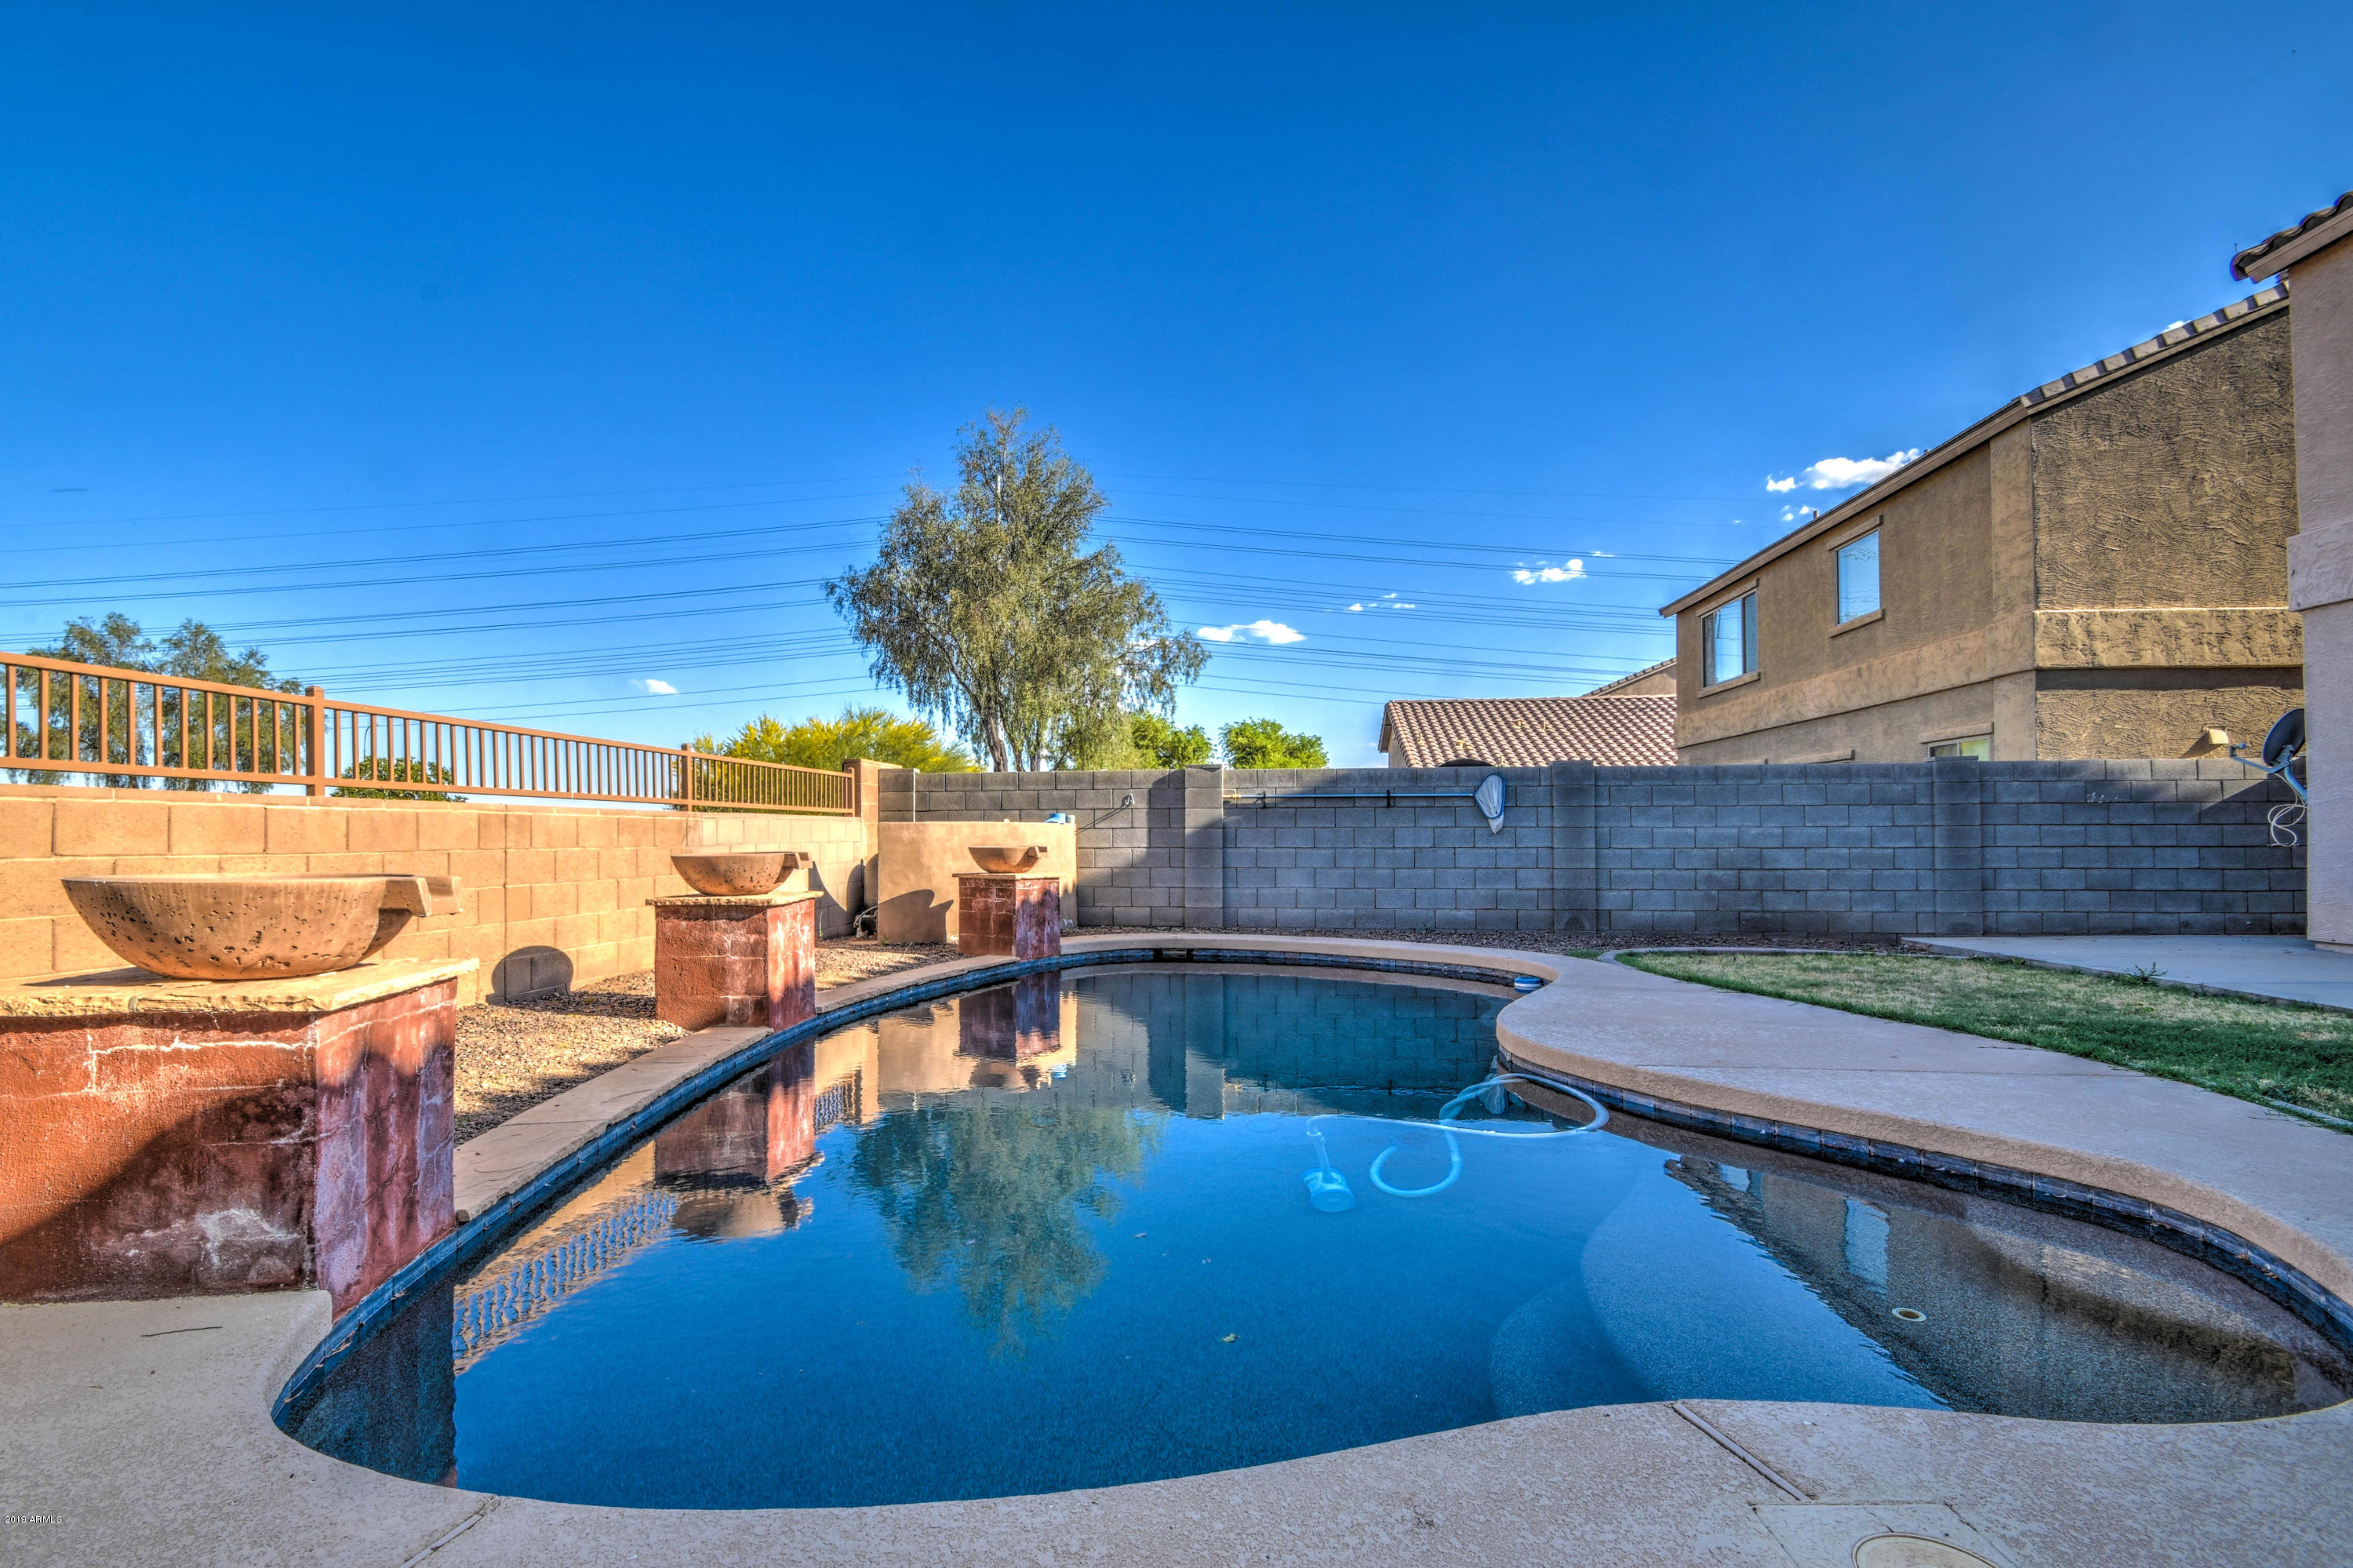 MLS 5927116 3427 S 87TH Drive, Tolleson, AZ 85353 Tolleson AZ Private Pool